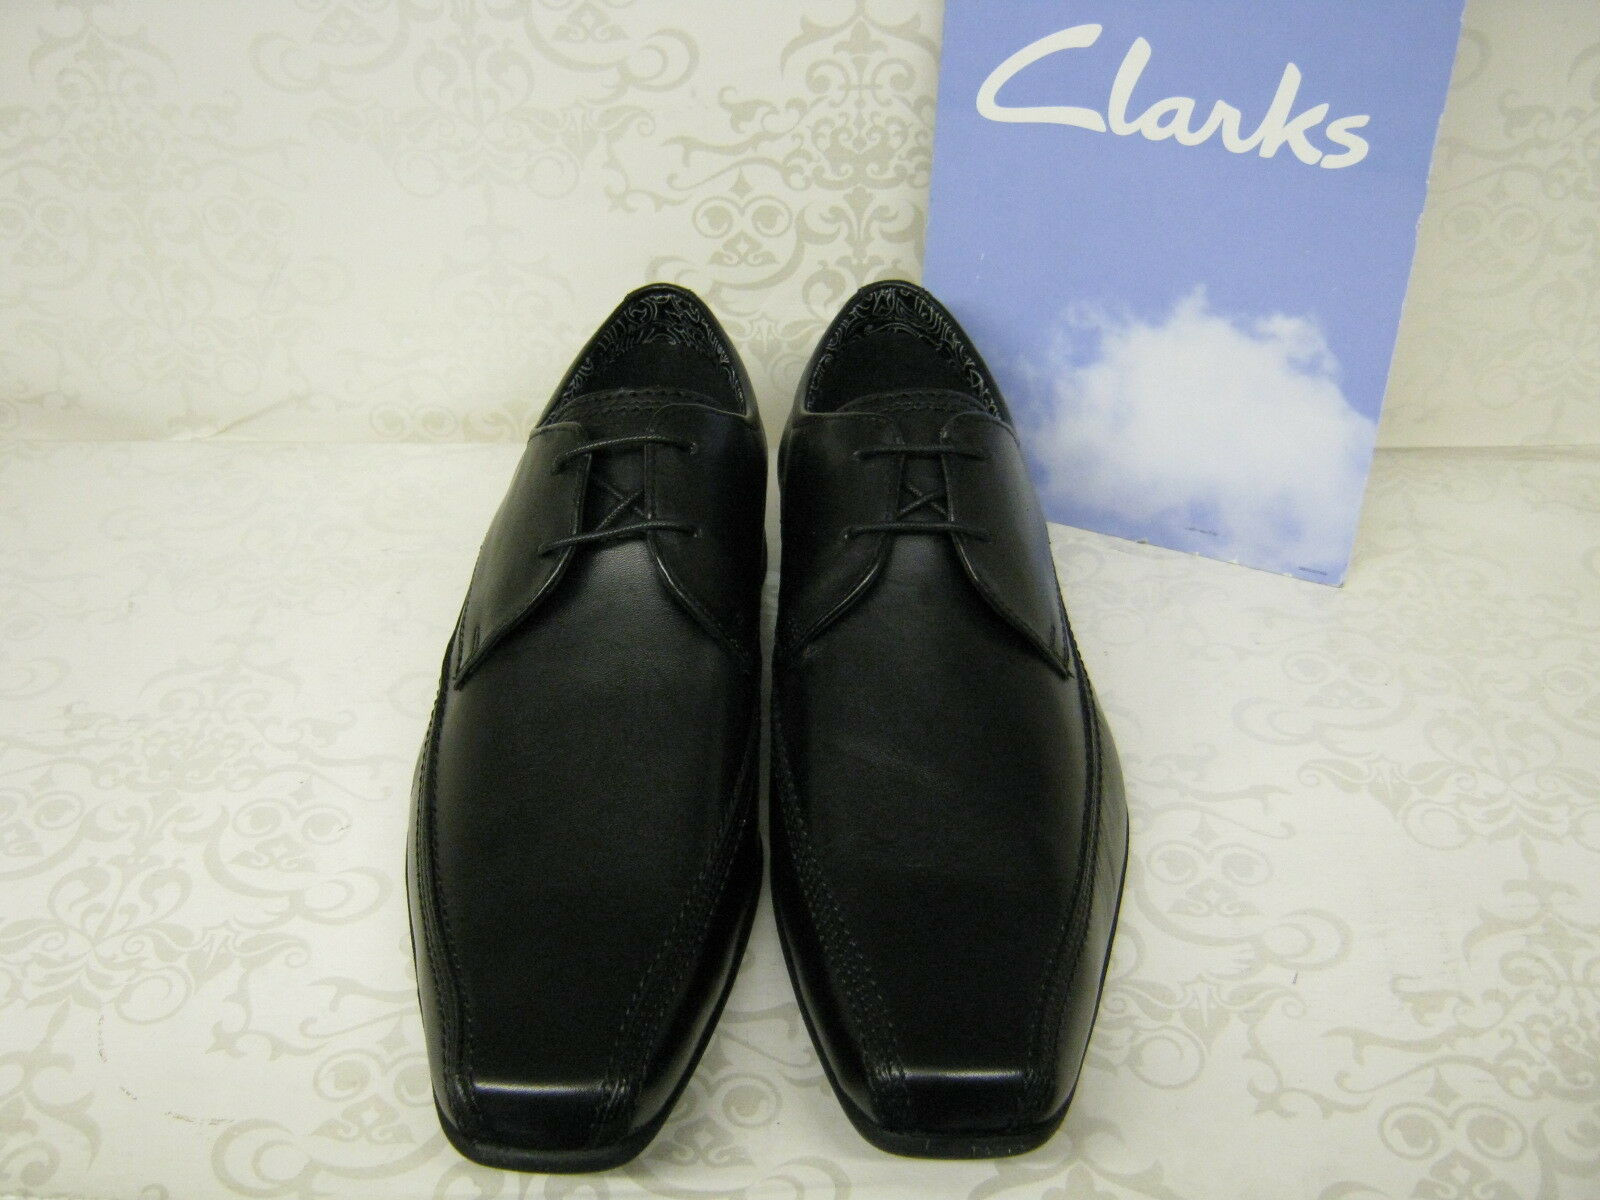 Clarks Aze Day Black Leather Smart Lace Up Shoes